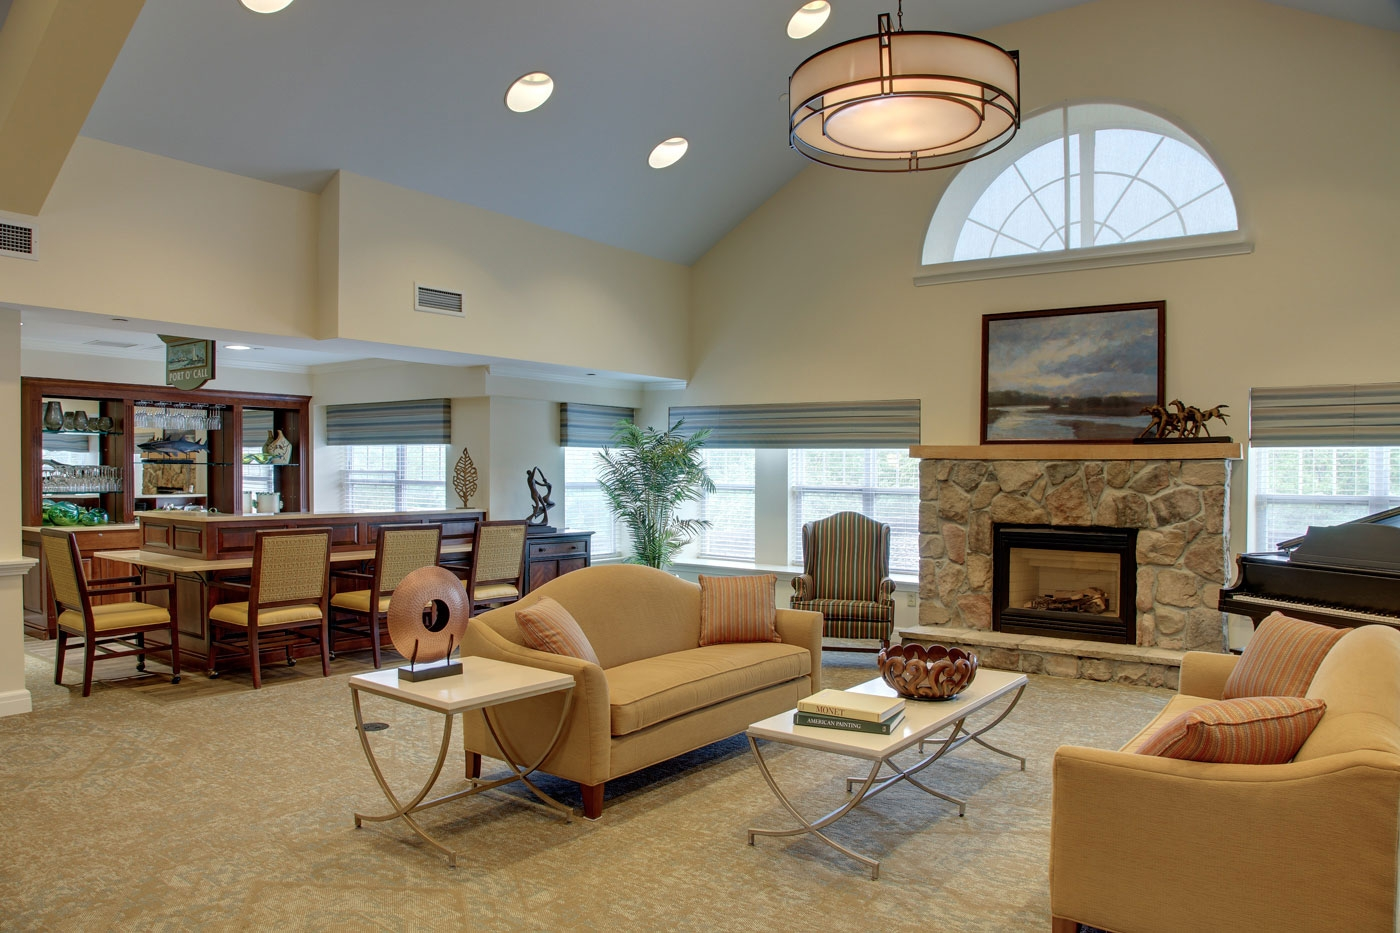 WDC's design of a spacious, common seating area invites daily socializing in this senior living community